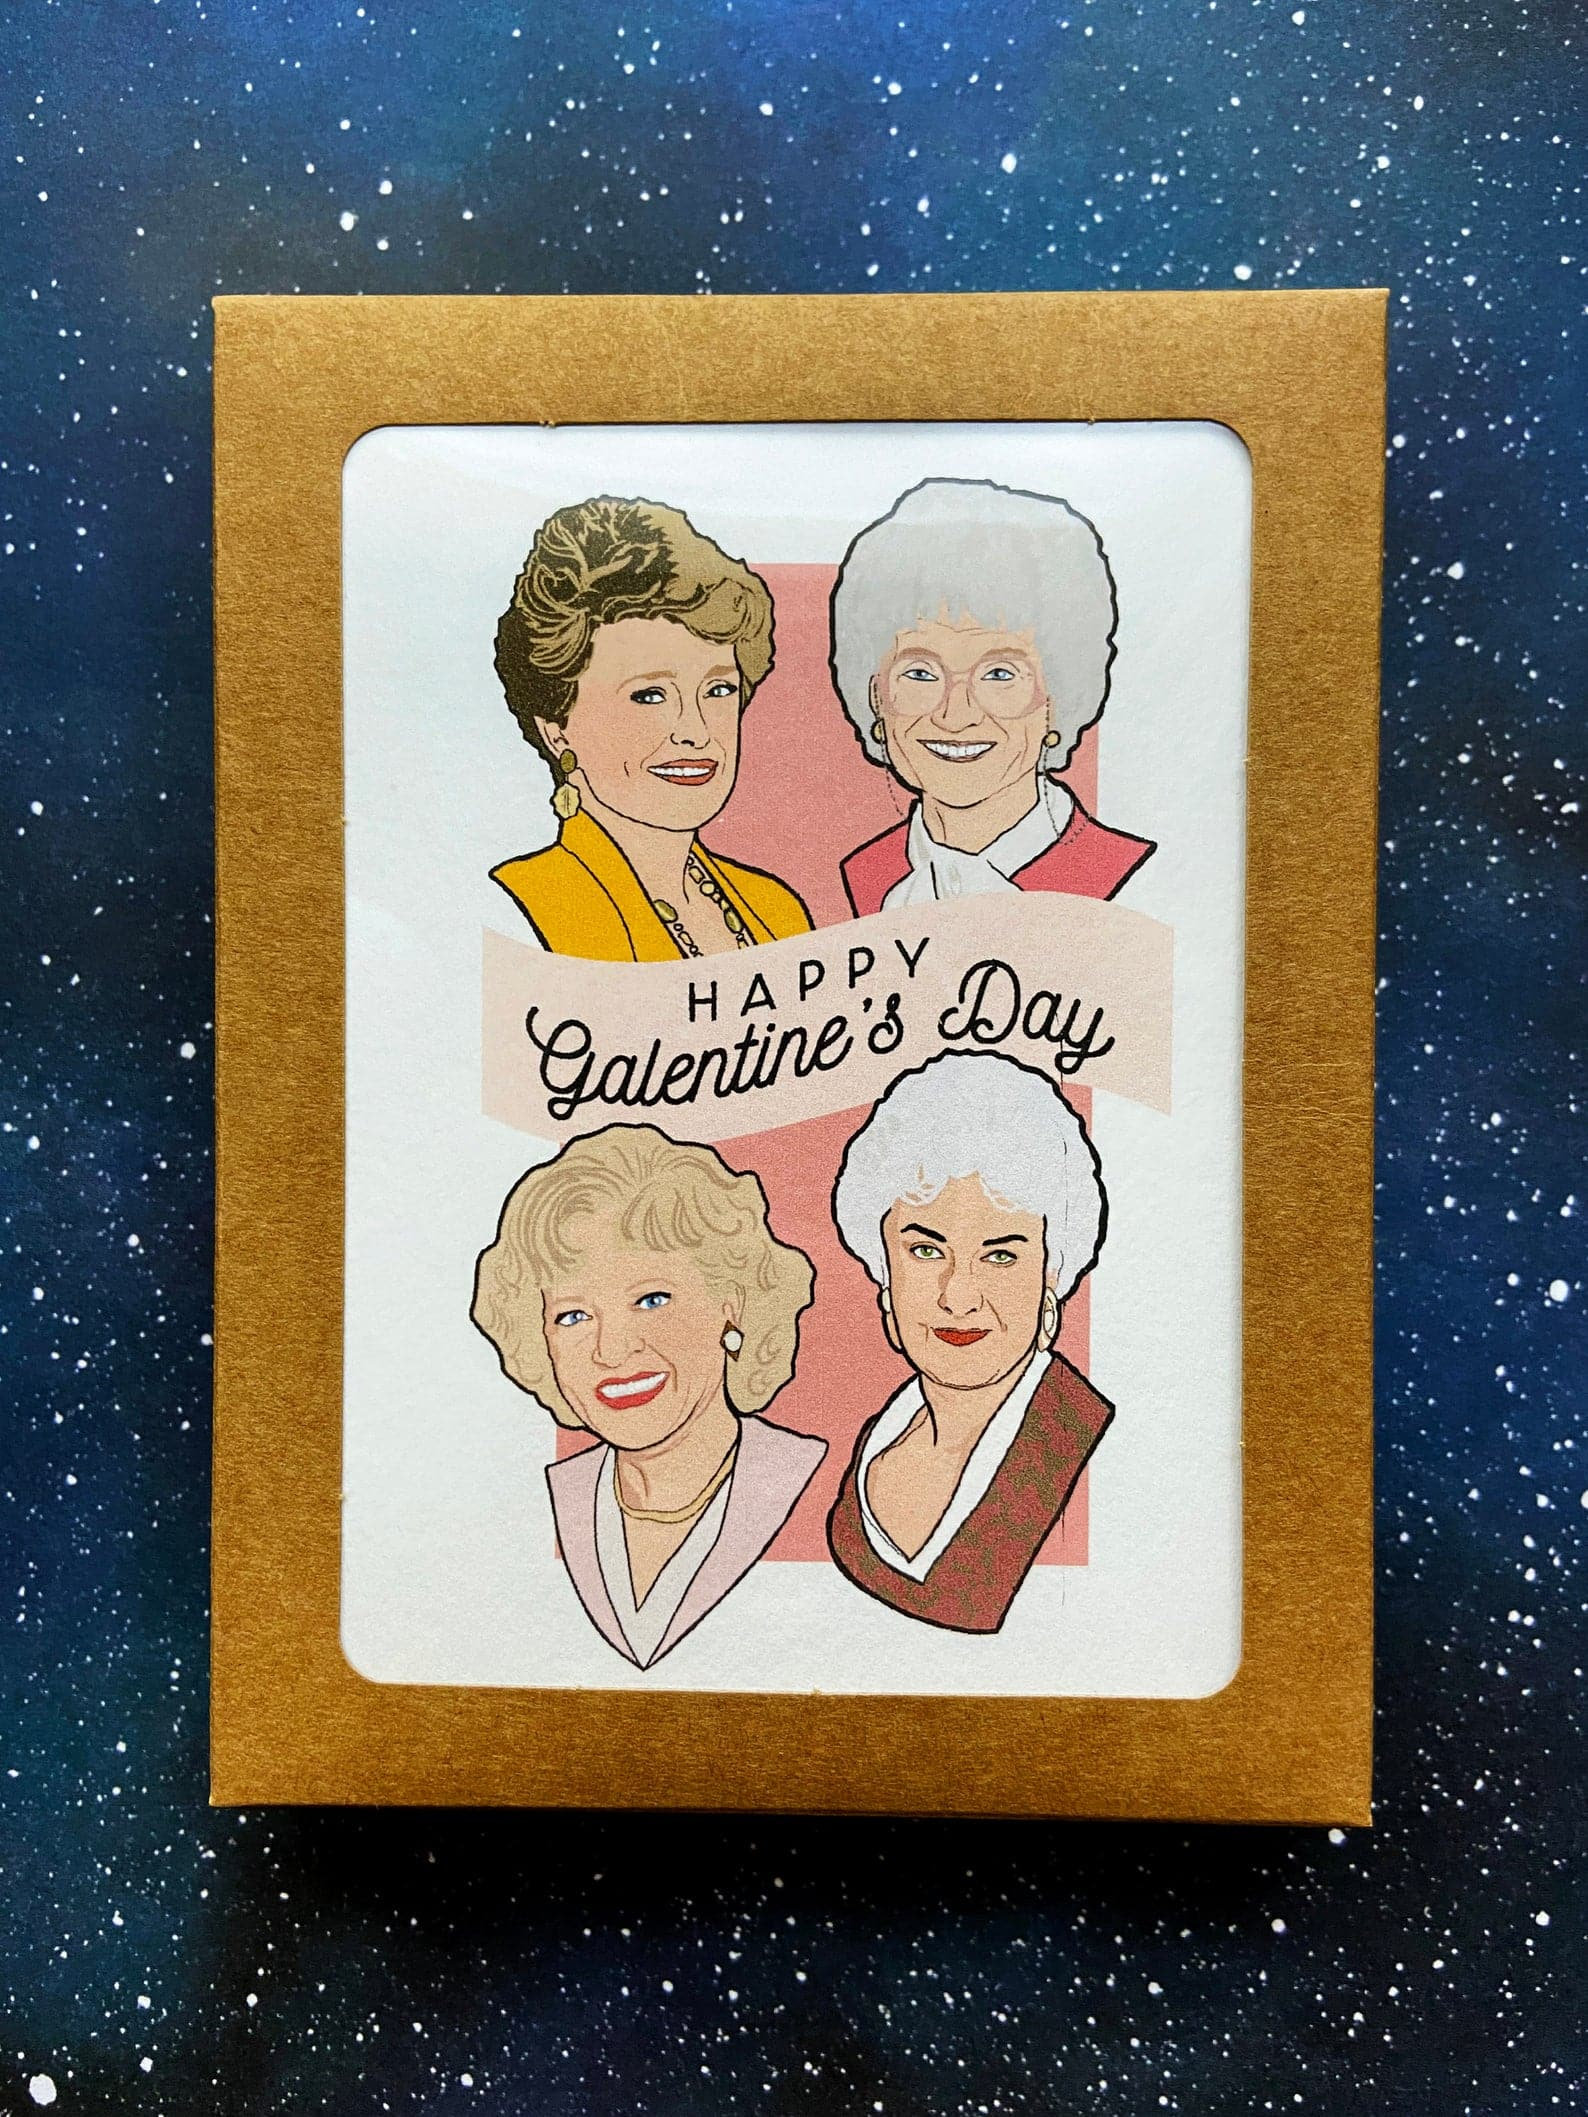 Happy Galentine's Day 6 Pack of Cards